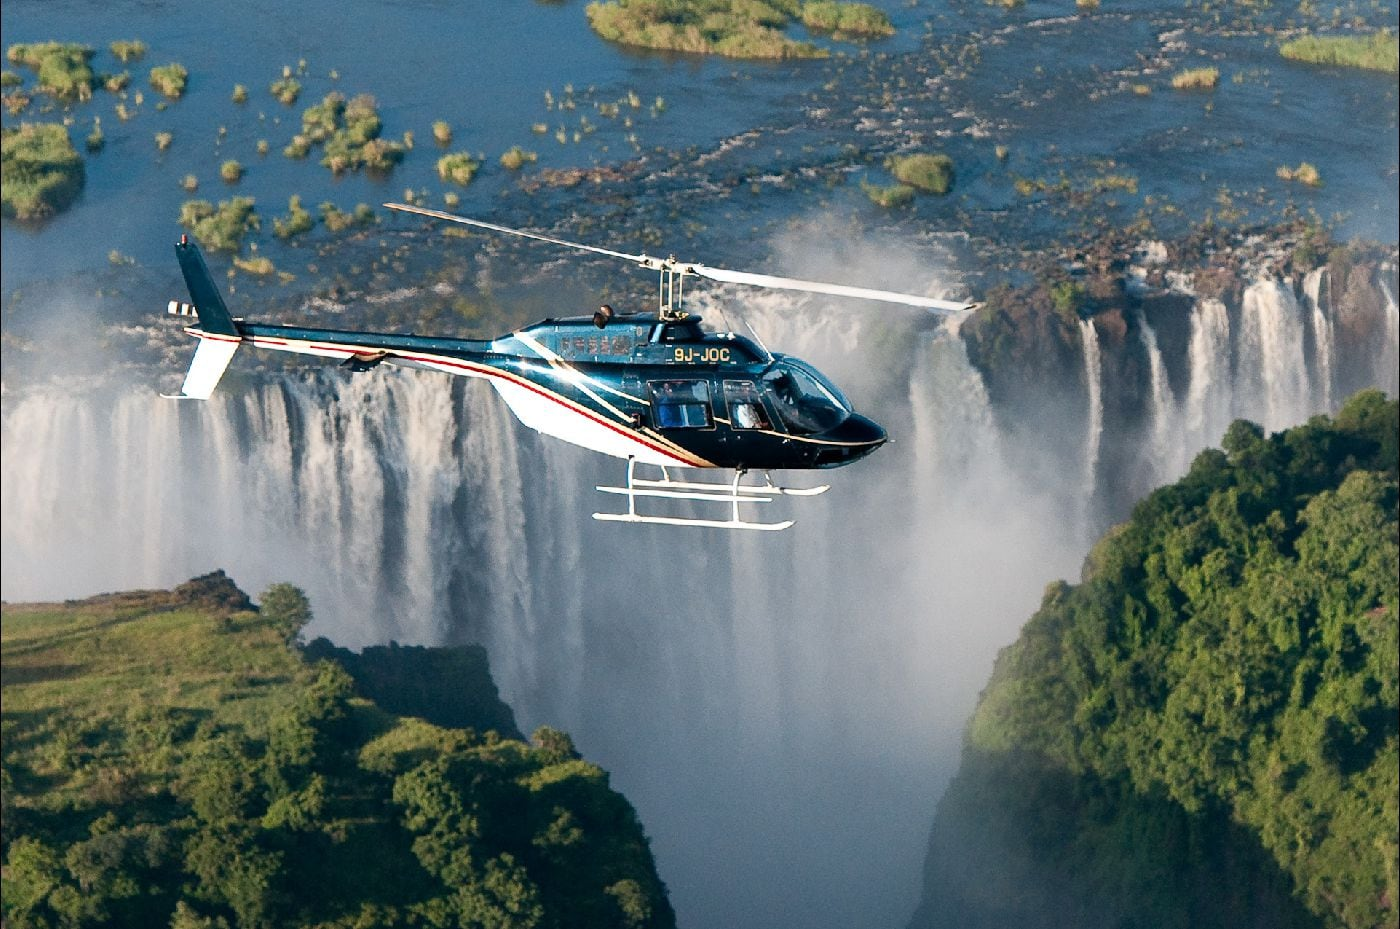 Flight of Angels - Helicopter Flight over The Victoria Falls in Zimbabwe (6-Seater)